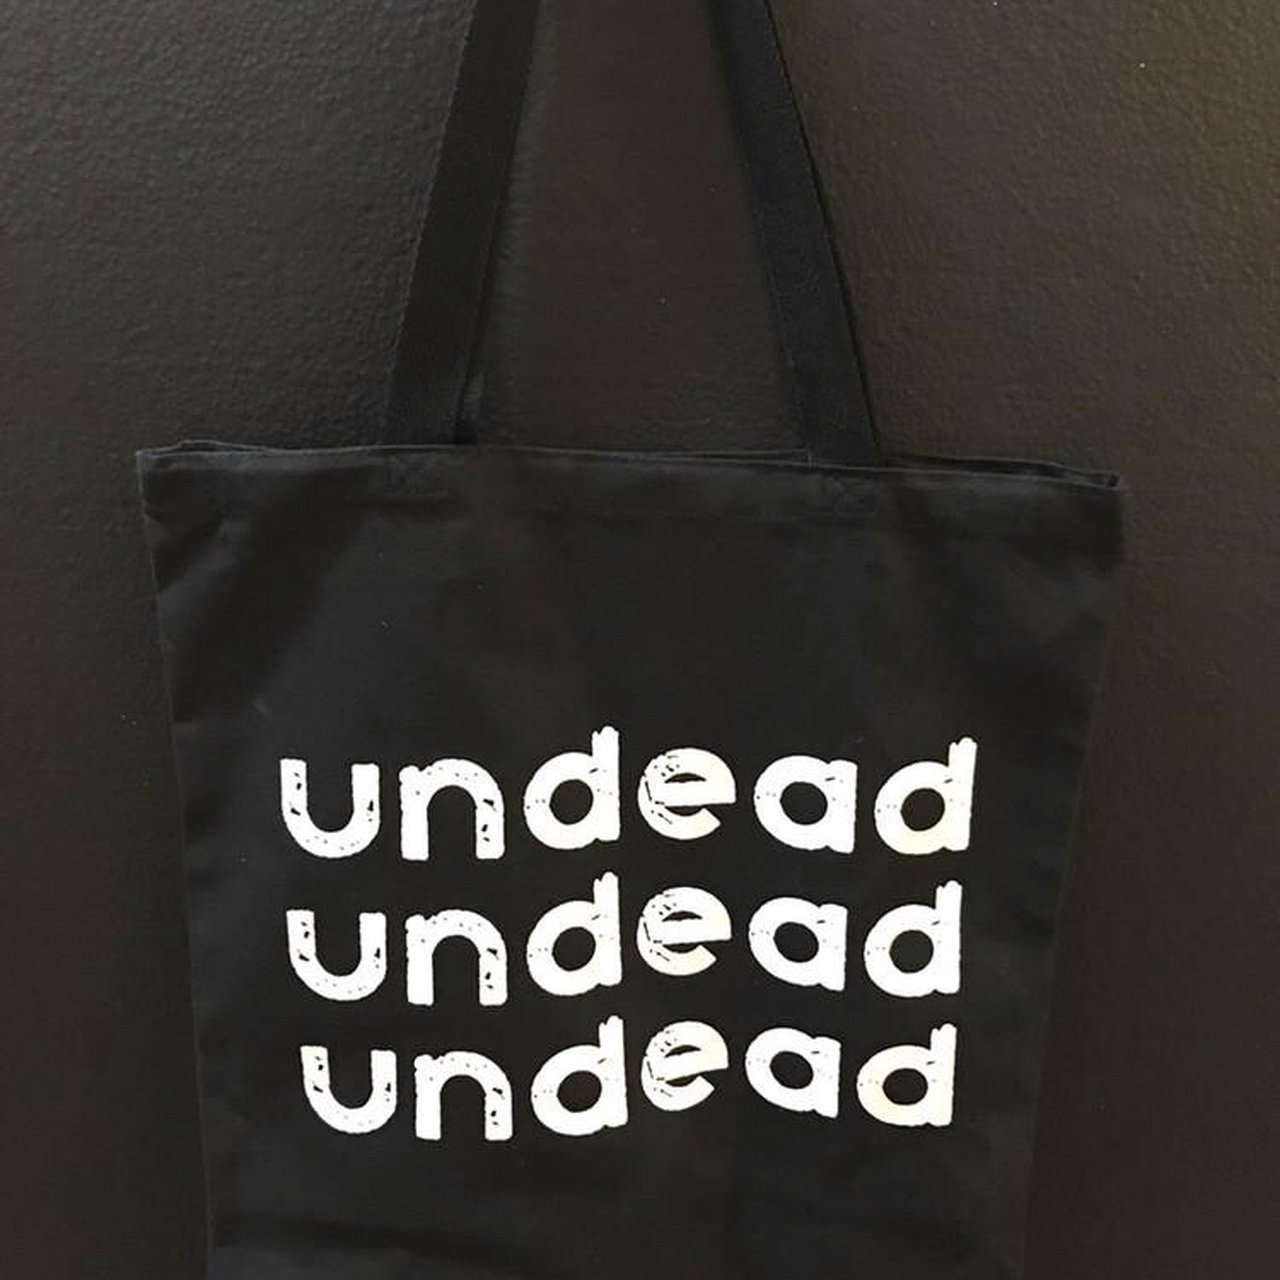 UNDEAD UNDEAD UNDEAD bauhaus tote bag by Nothing. UNDEAD or - Depop 523b6f9456343